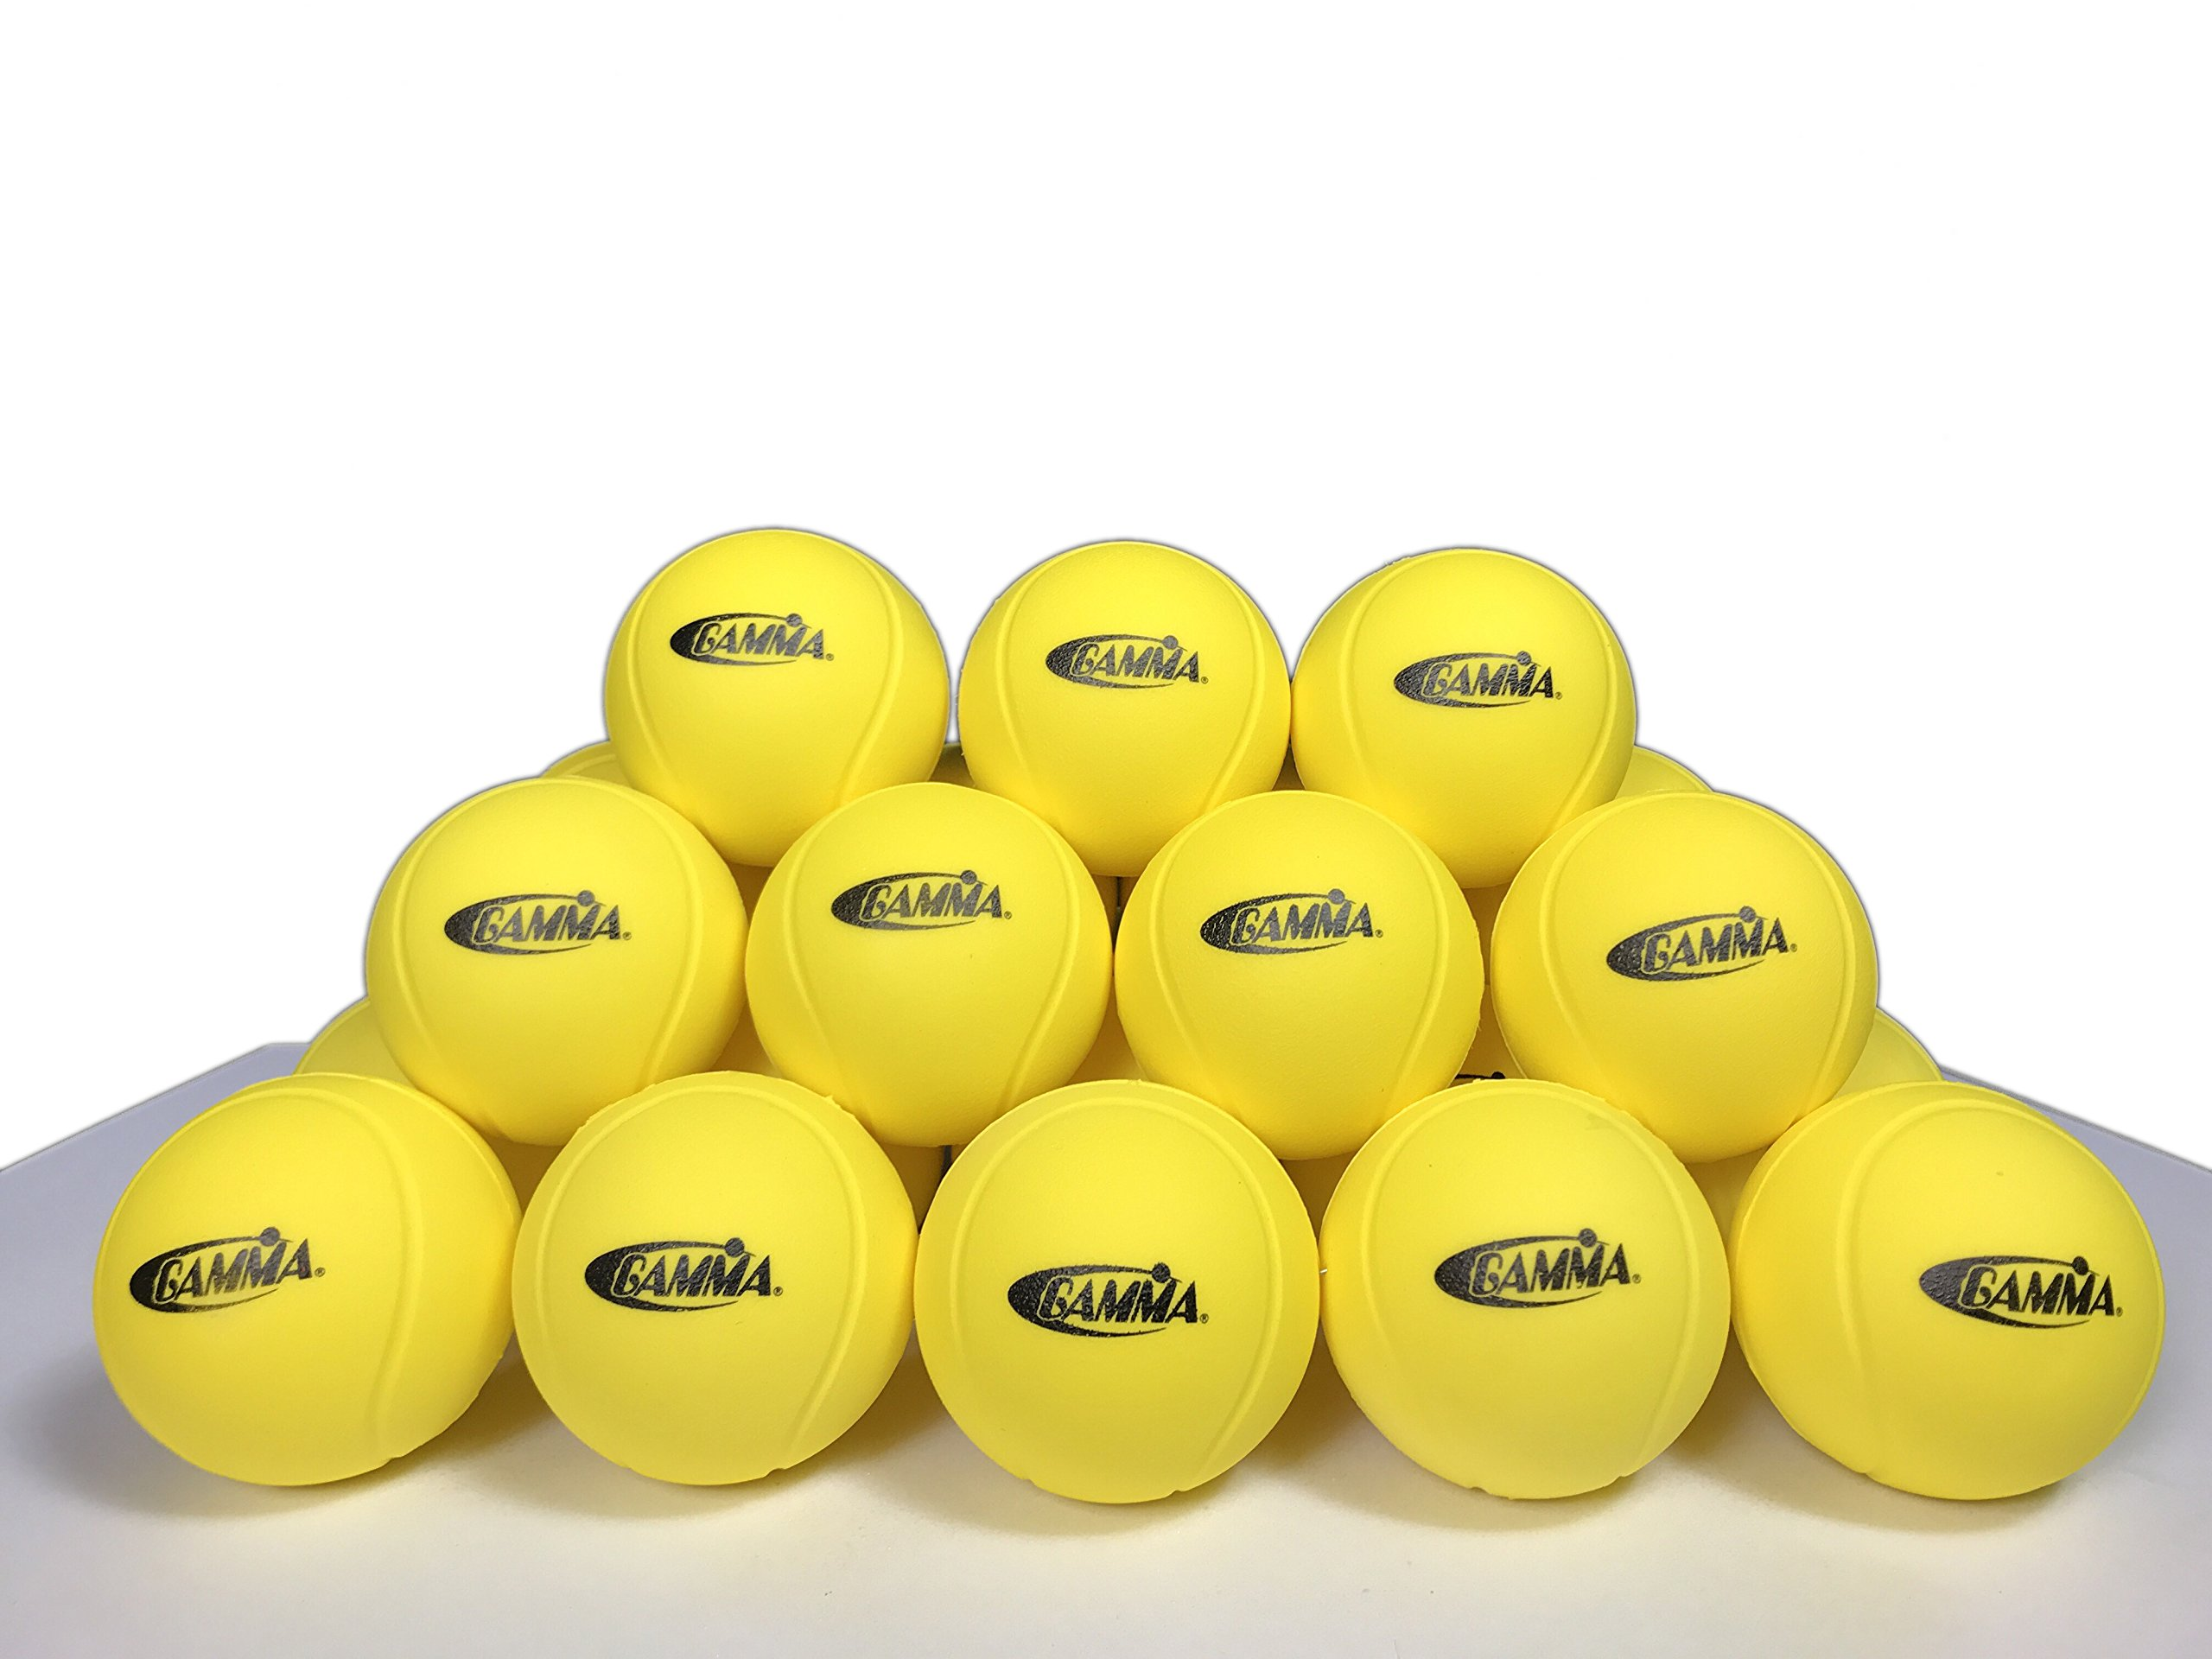 Gamma Sports Quick Kids 36 Foam Low Bounce Training and Practice Tennis Balls for Kids and Beginners, 75% Slower than Standard Tennis Balls (Designed for 36' Tennis Courts, 60 Pack, Yellow)